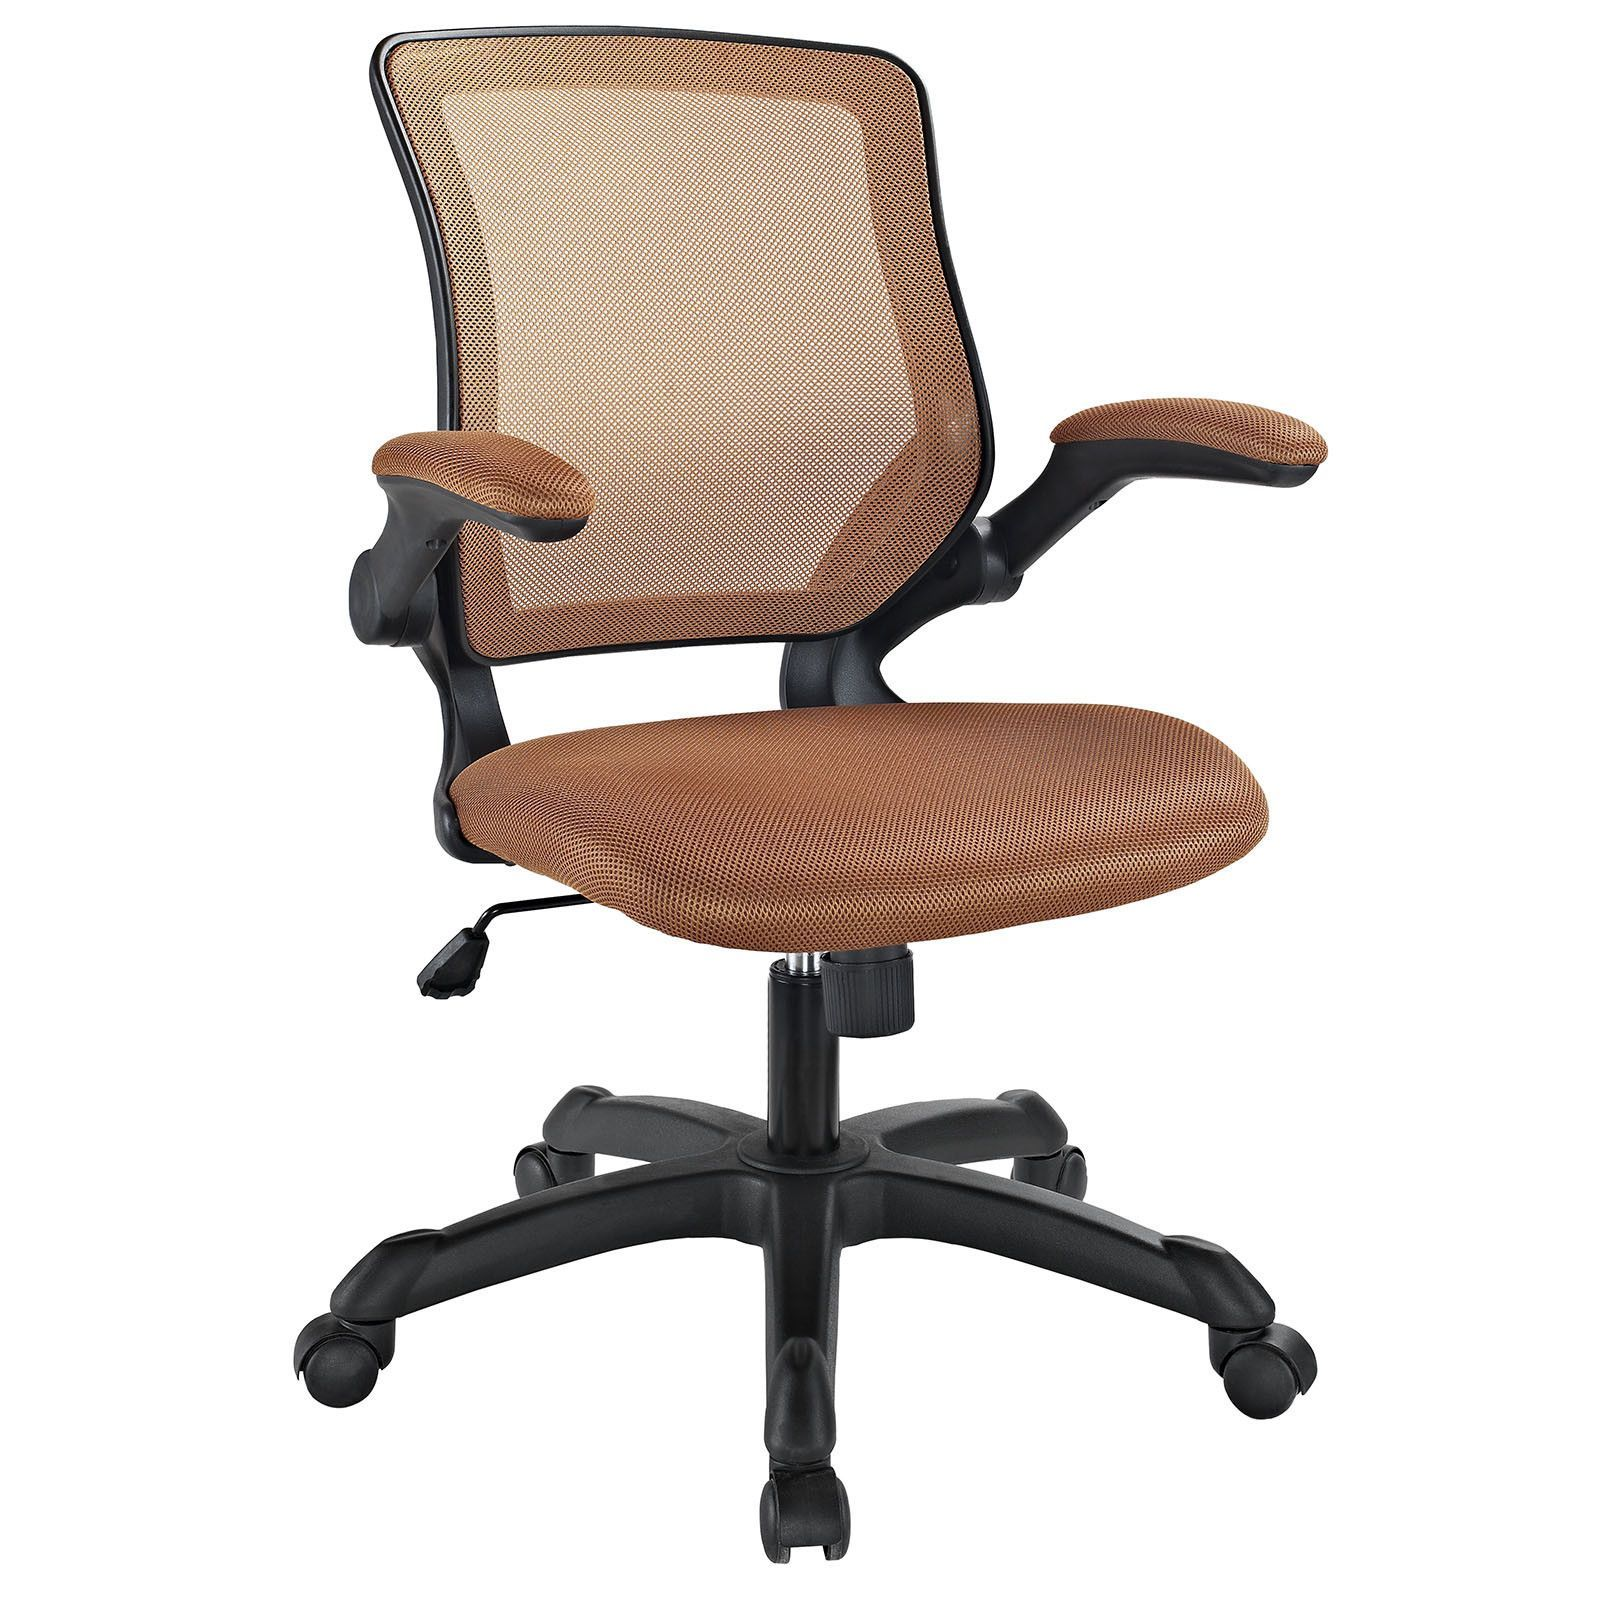 Sensational Veer Office Chair In Tan Products Mesh Office Chair Download Free Architecture Designs Scobabritishbridgeorg